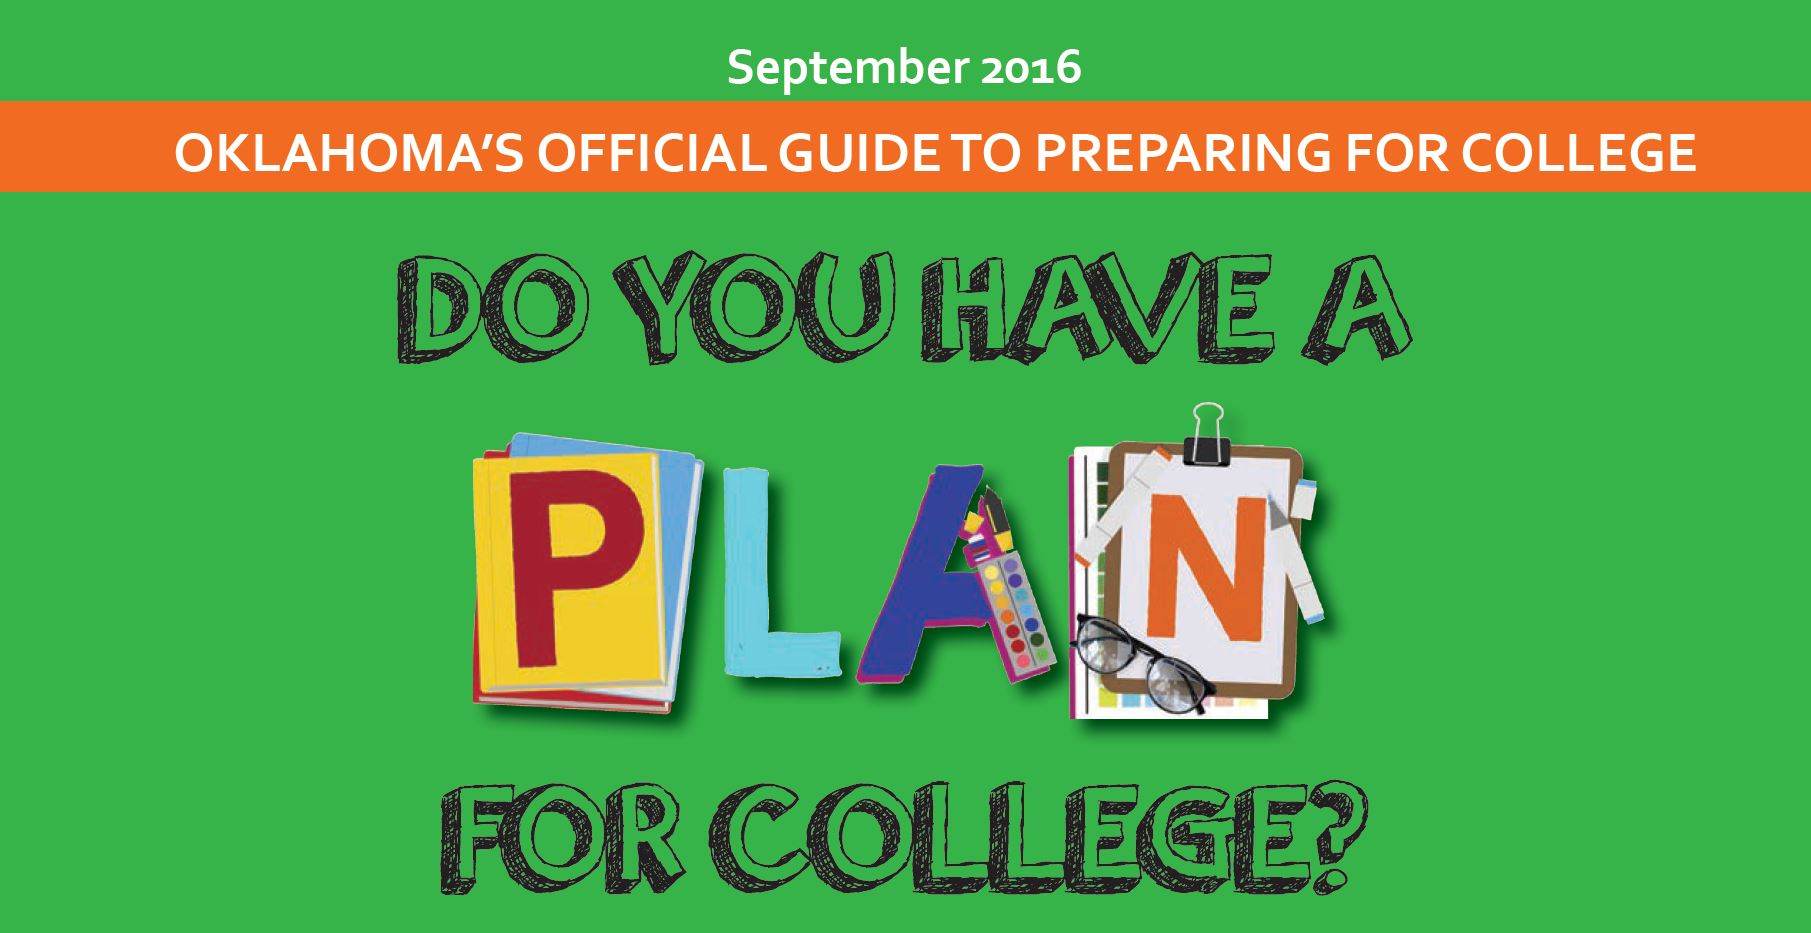 plan for college